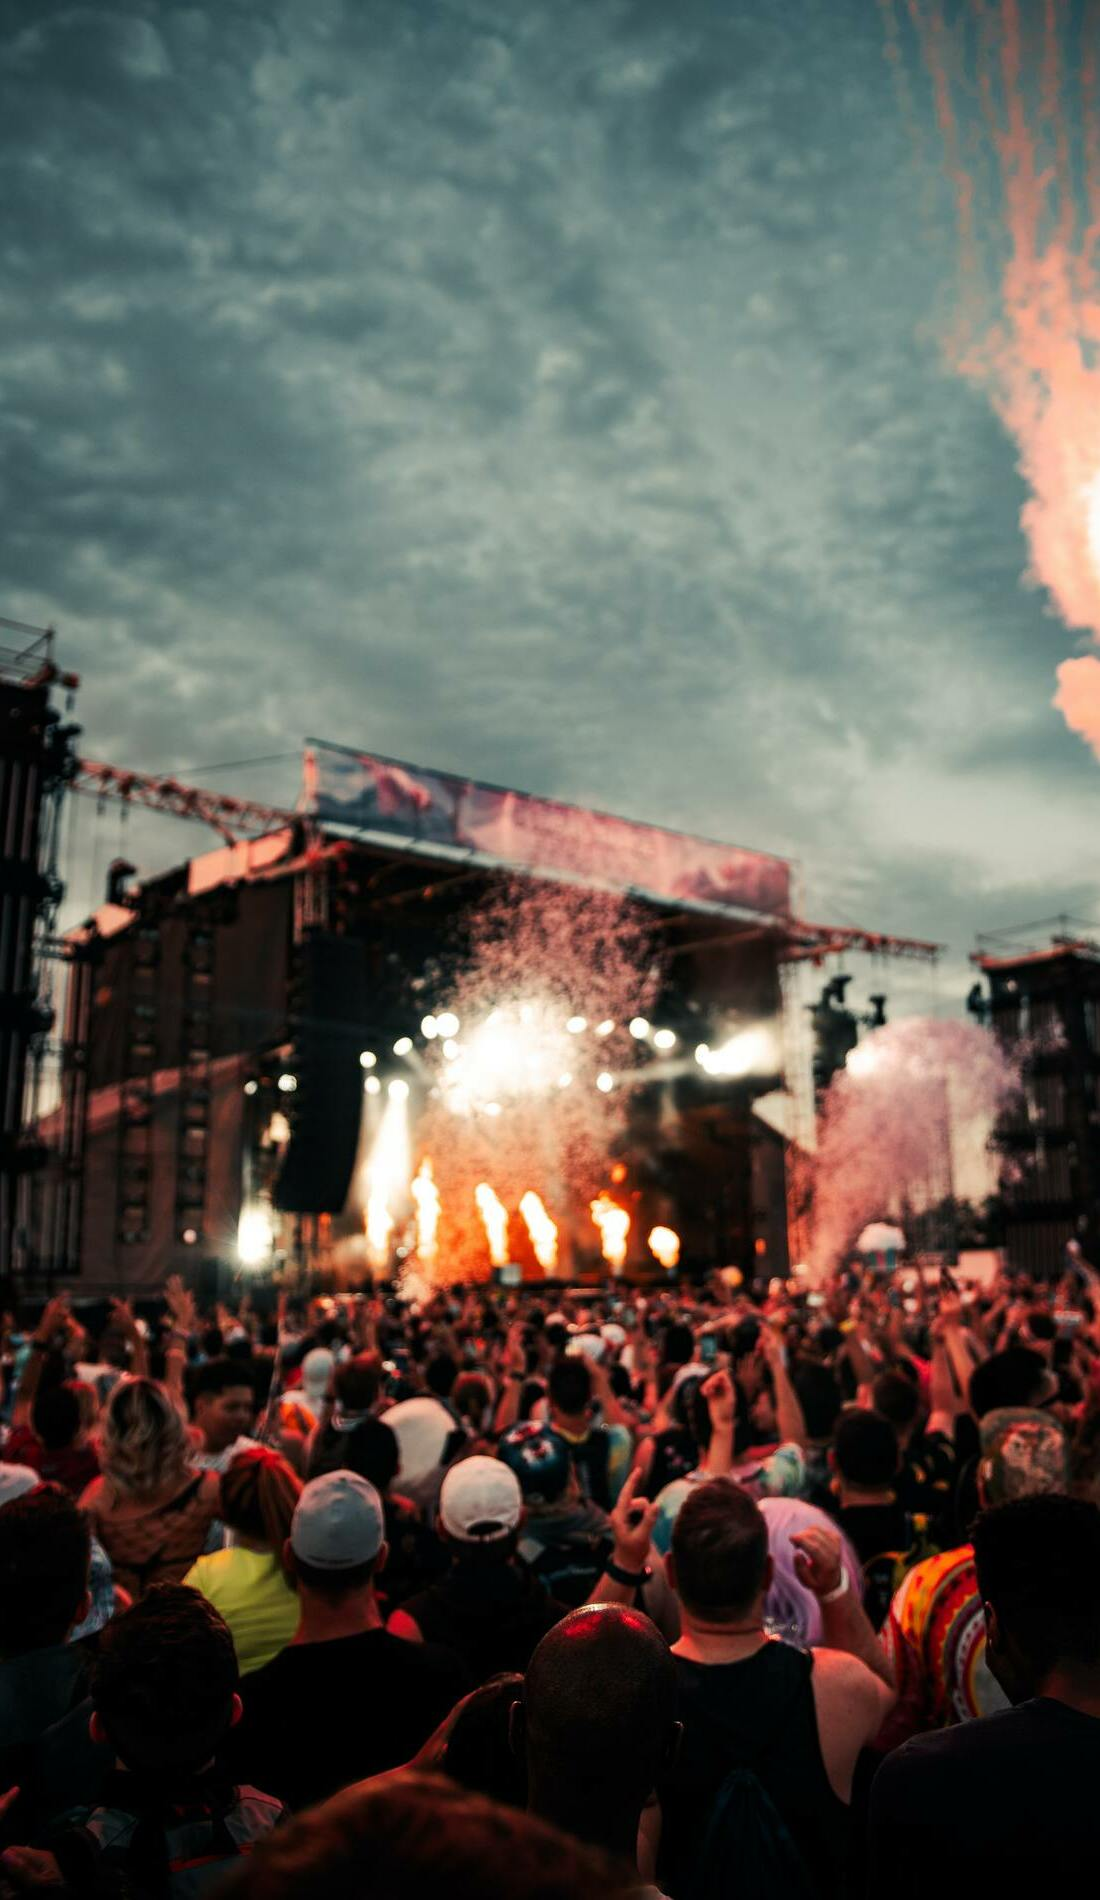 A Firefly Music Festival live event